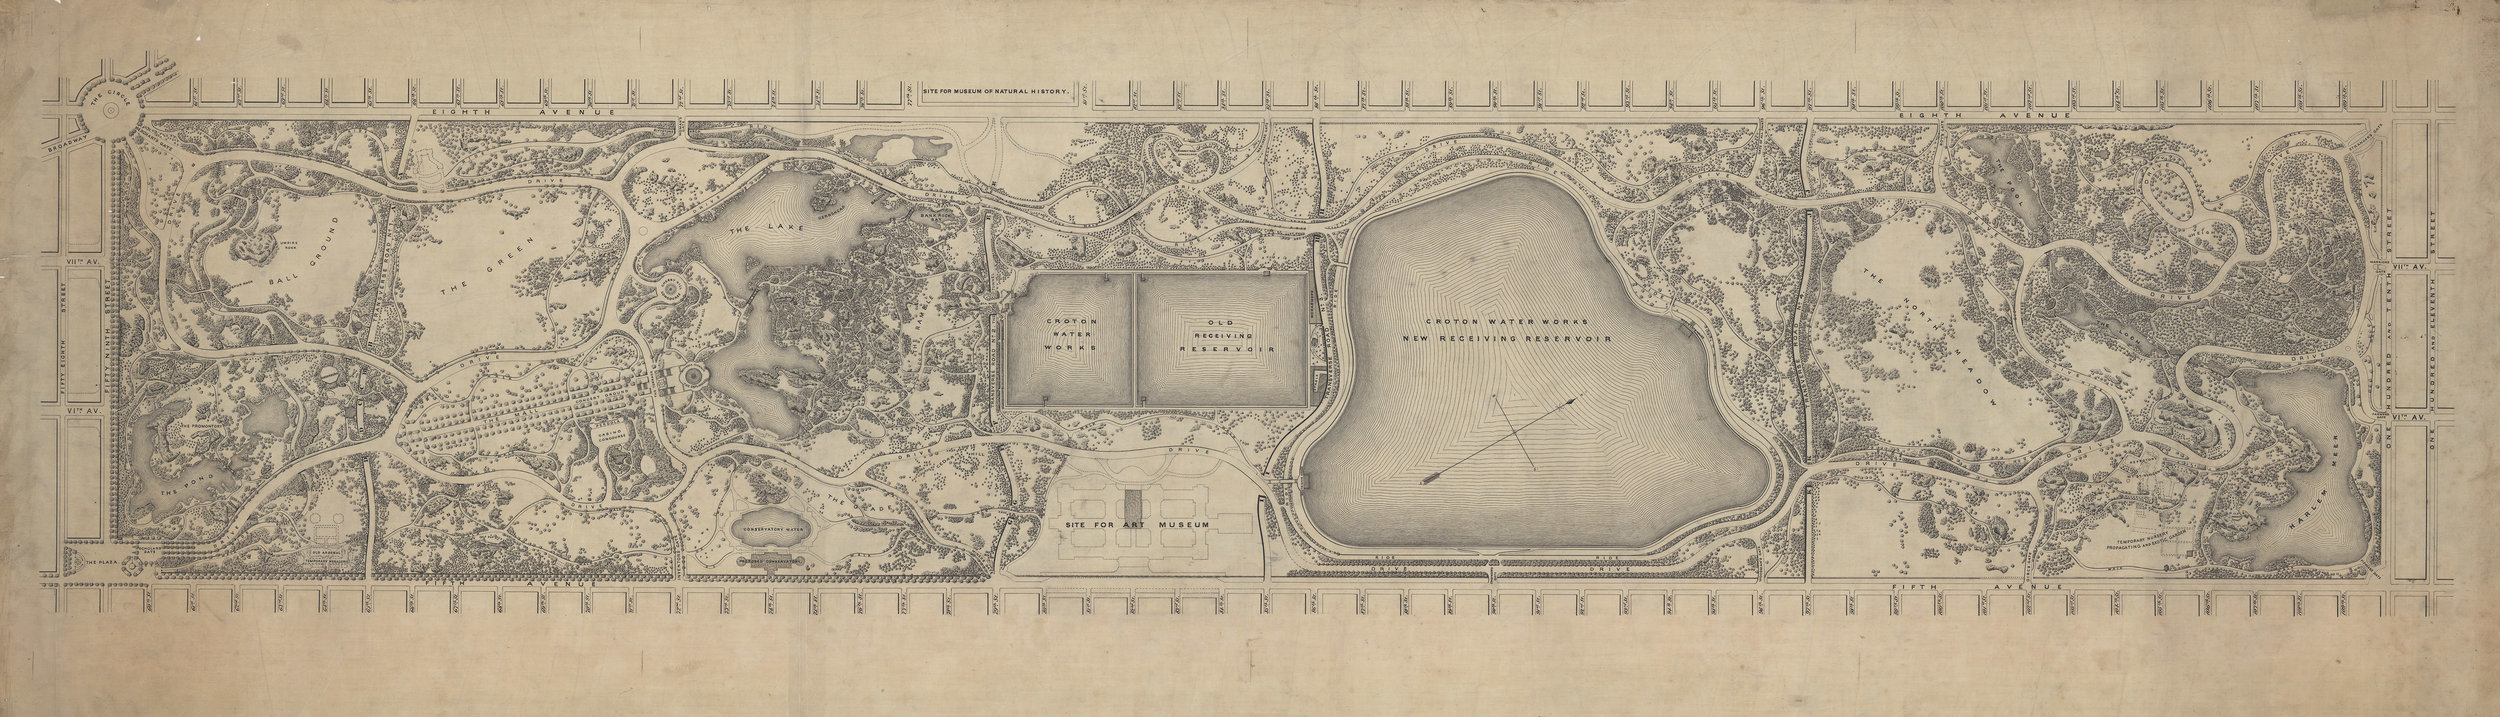 Map of Central Park, c. 1875. Black ink on linen, 24 x 74 inches.  This map shows work both planned and completed as of the mid-1870s. It includes Drives, Rides, Walks, bridges, named gates, and major structures as well as several building that were being planned at the time but were never completed.